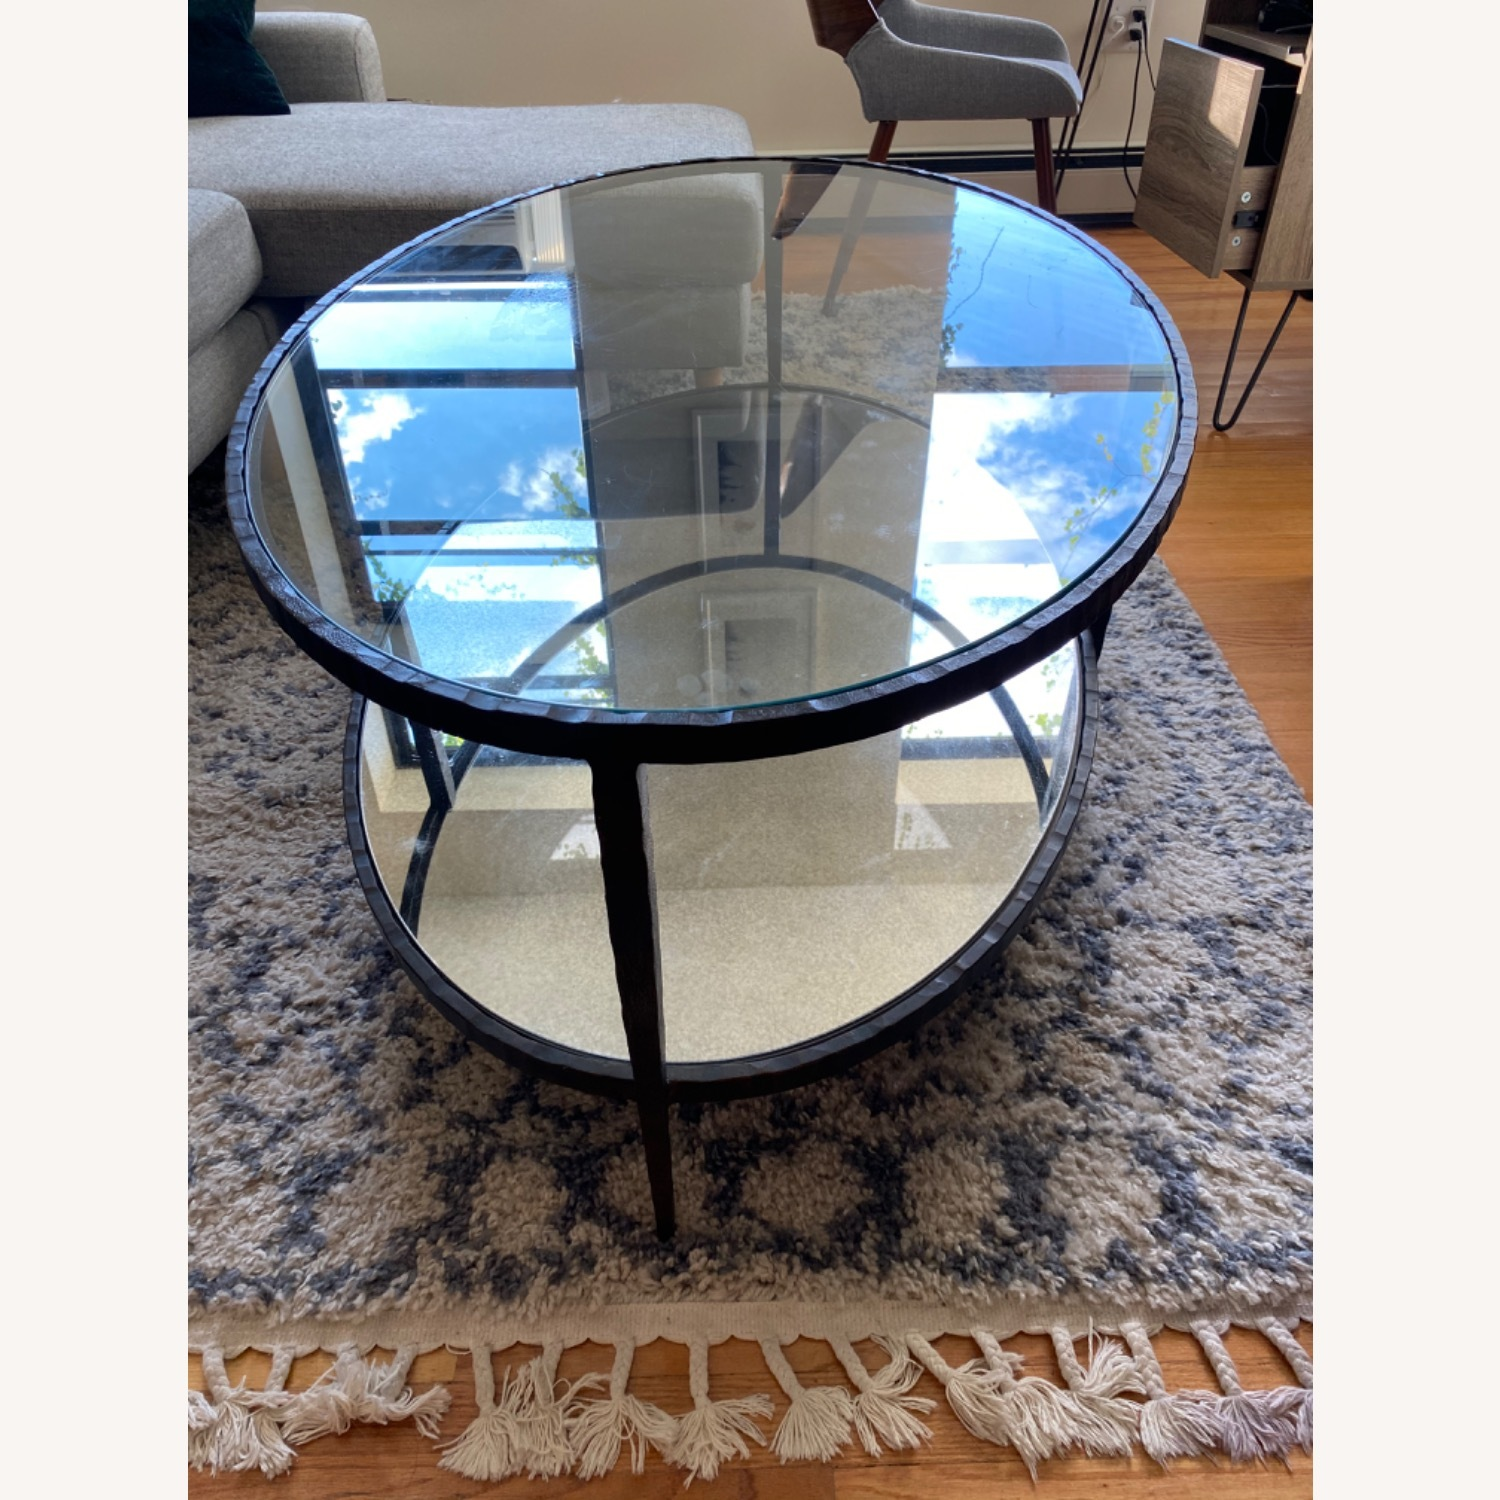 Crate & Barrel Clairemont Oval Coffee Table - image-1